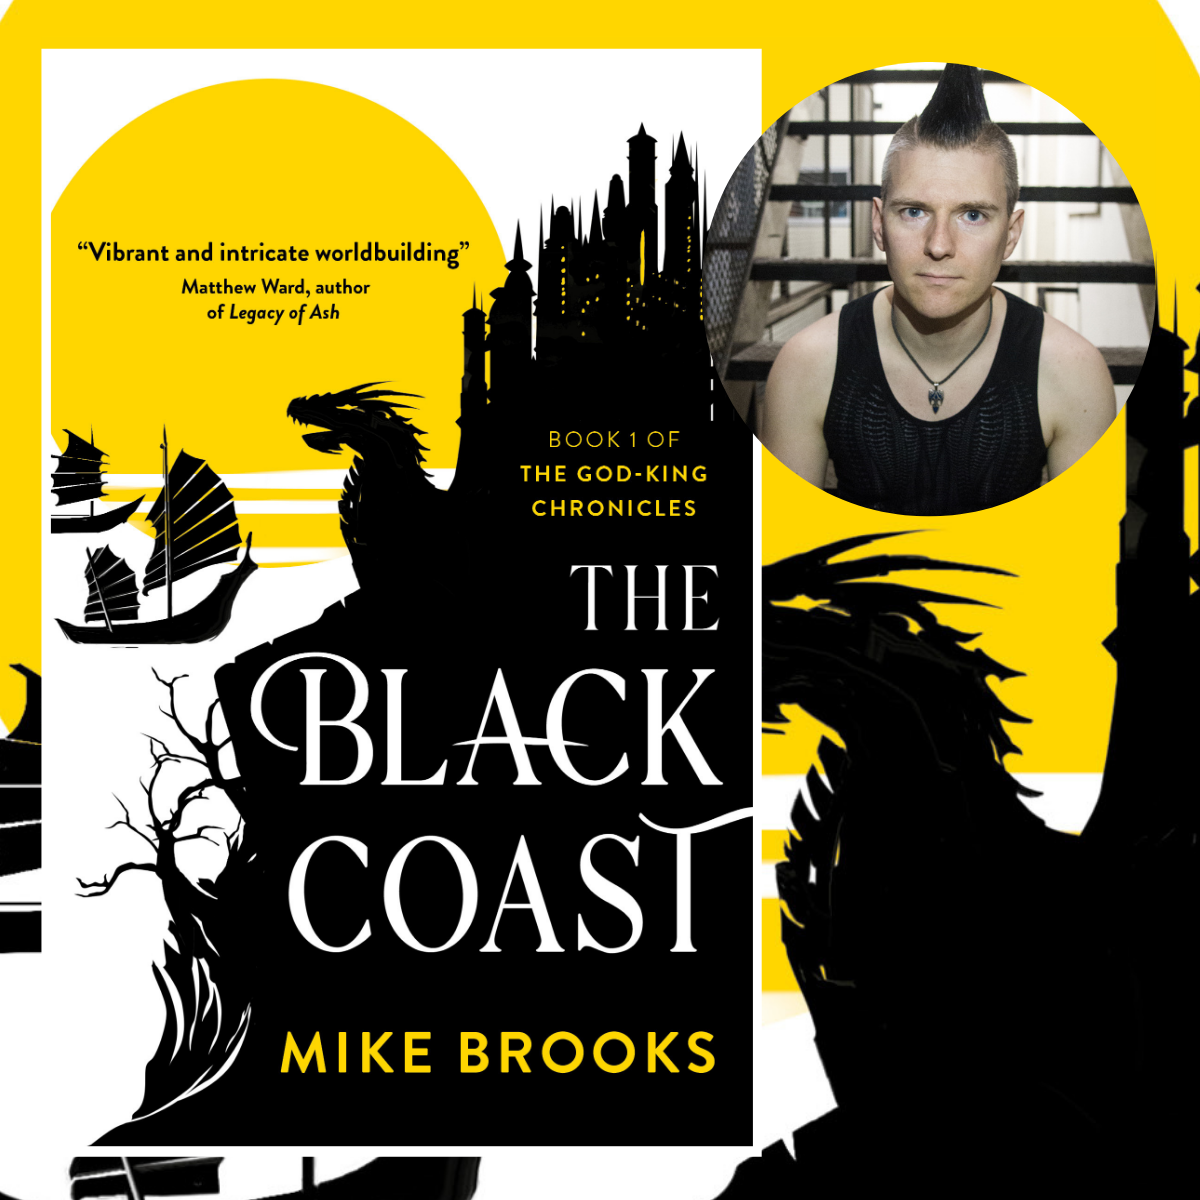 The Black Coast by Mike Brooks